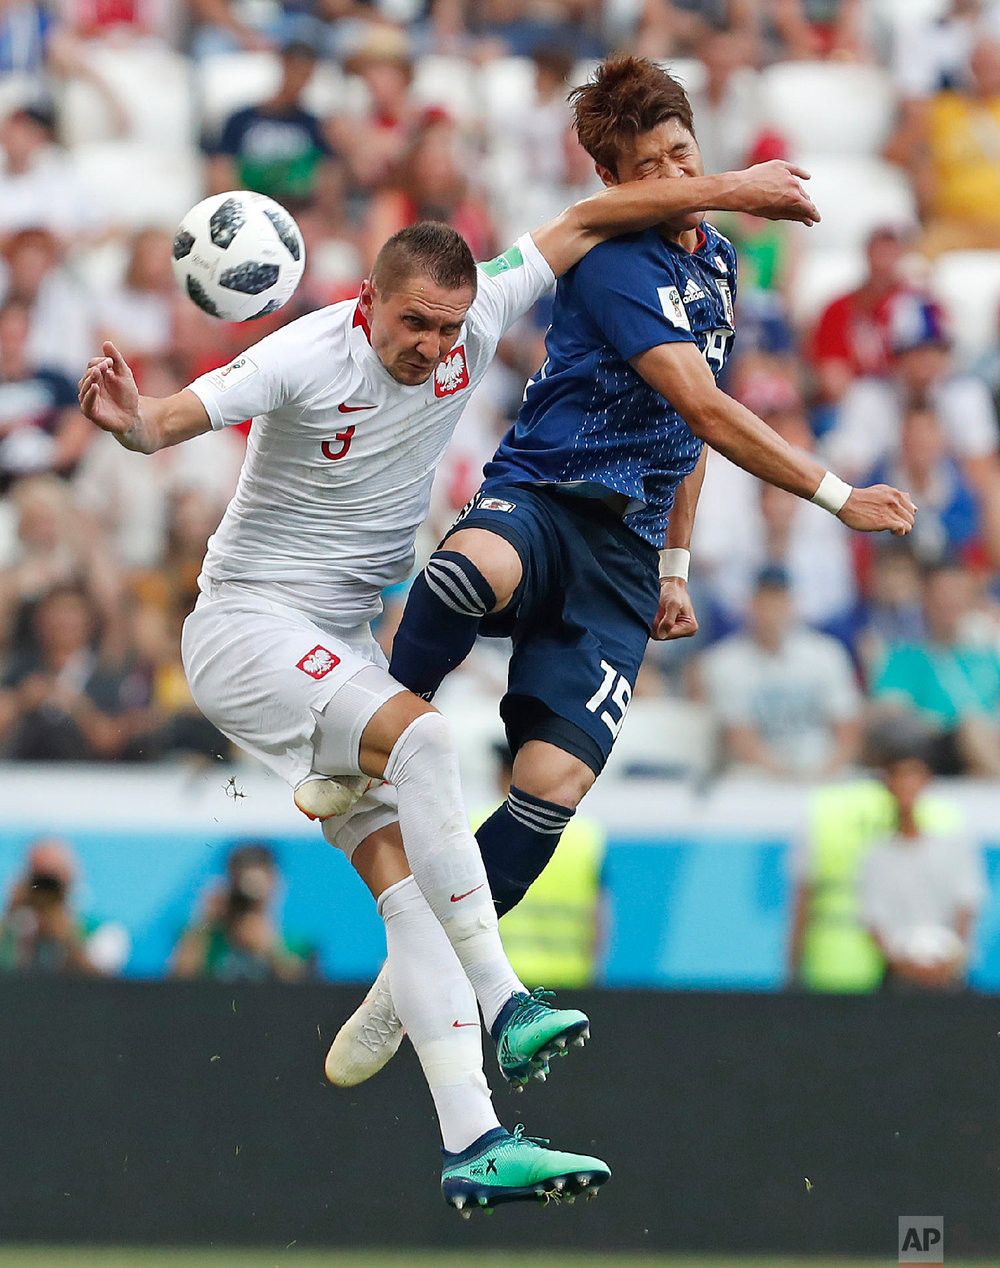 Poland's Artur Jedrzejczyk, left, challenges Japan's Hiroki Sakai during the group H match between Japan and Poland at the 2018 soccer World Cup at the Volgograd Arena in Volgograd, Russia, Thursday, June 28, 2018. (AP Photo/Darko Vojinovic)